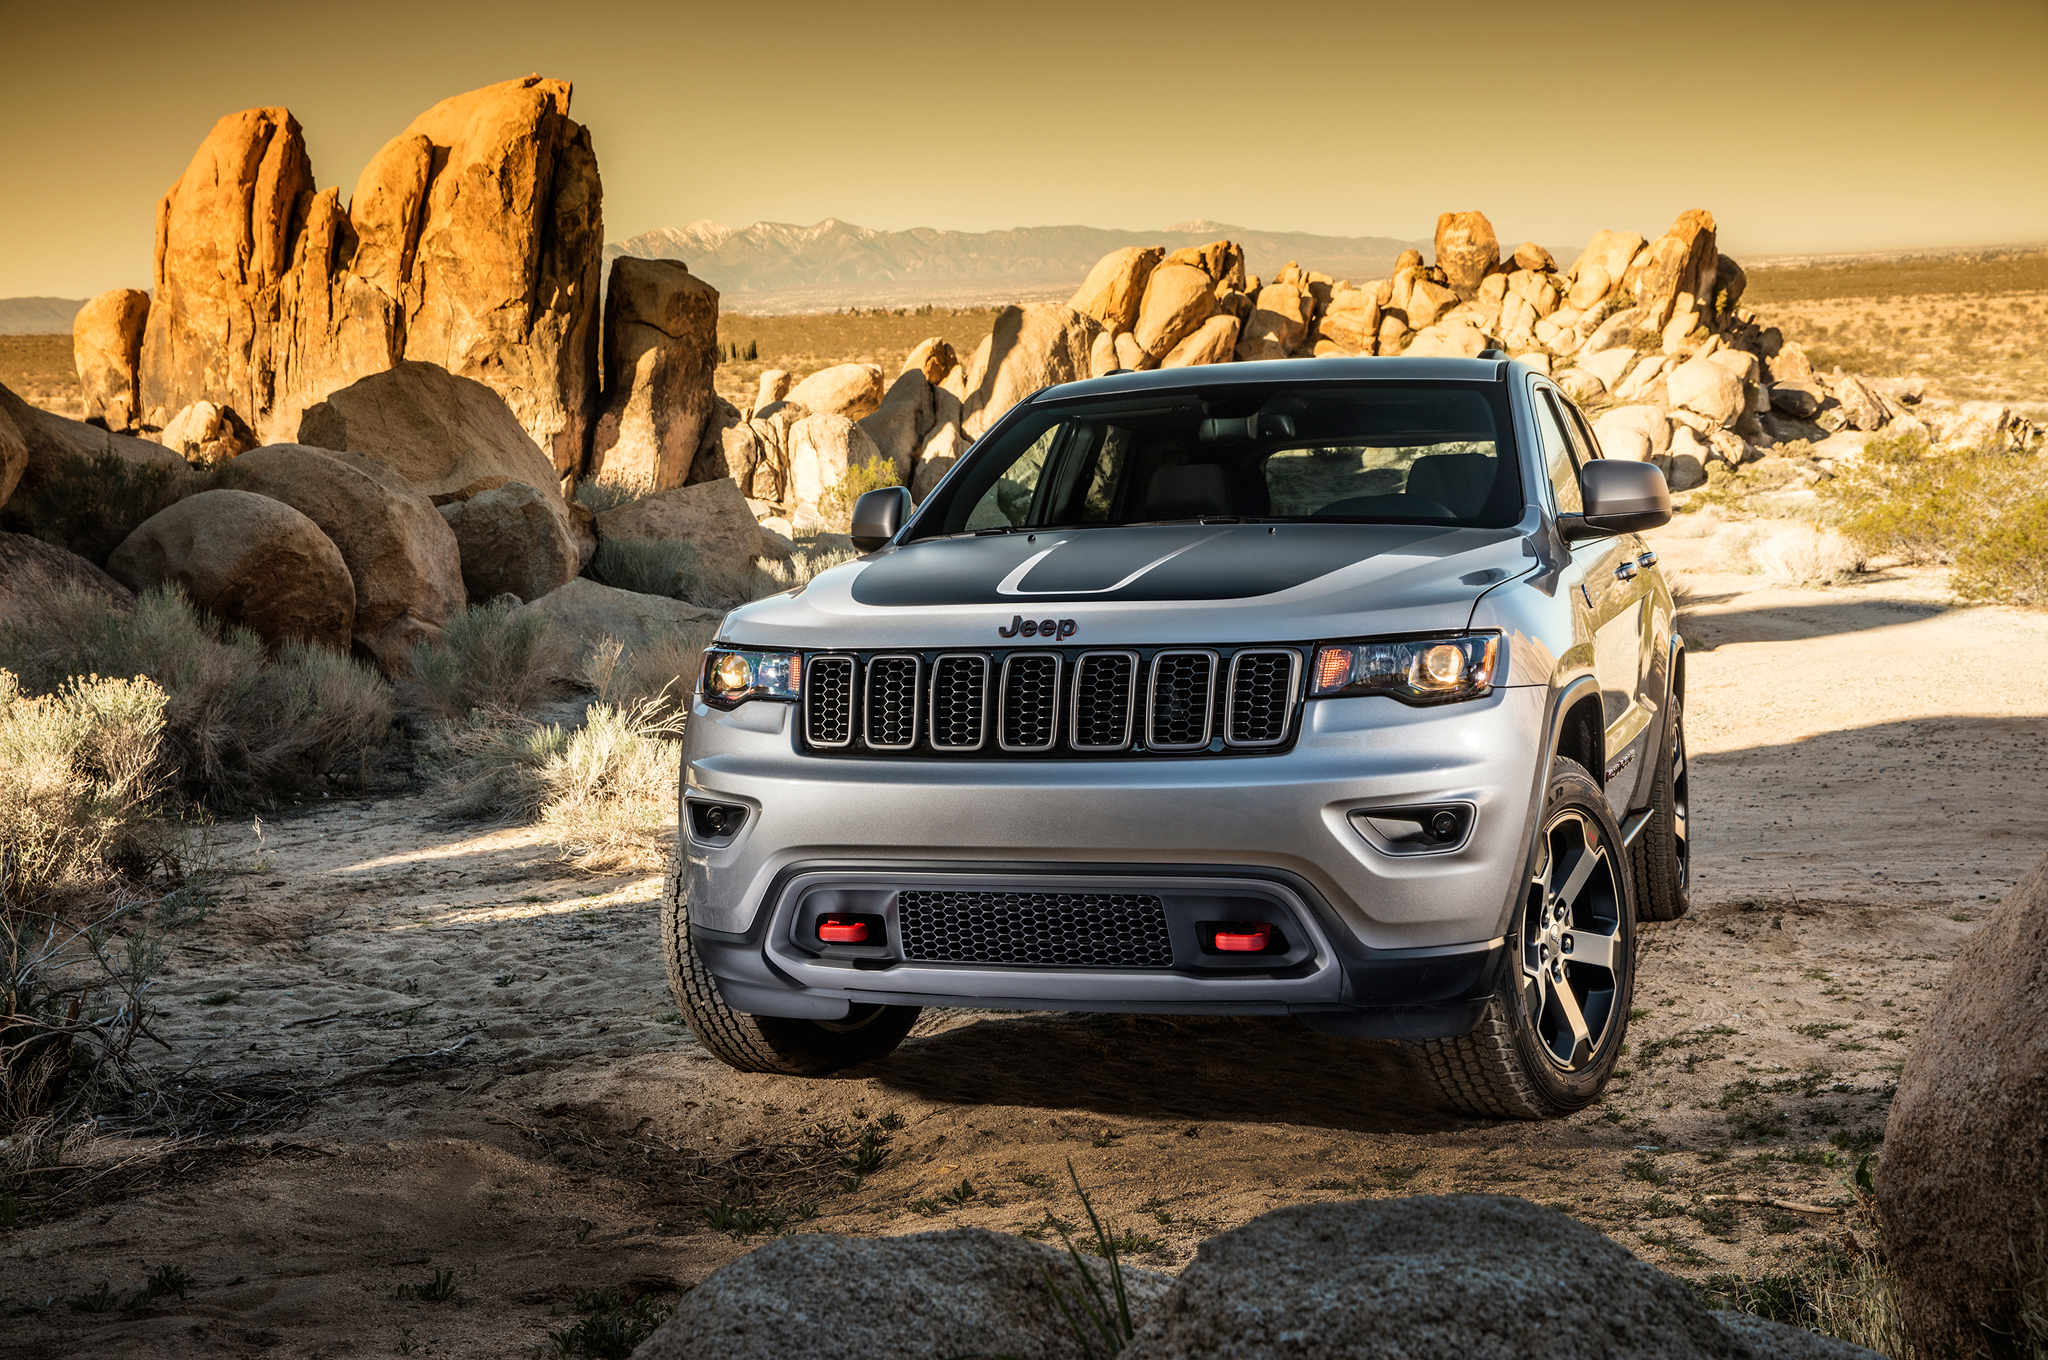 Jeep Grand Cherokee Trailhawk SUV of the year